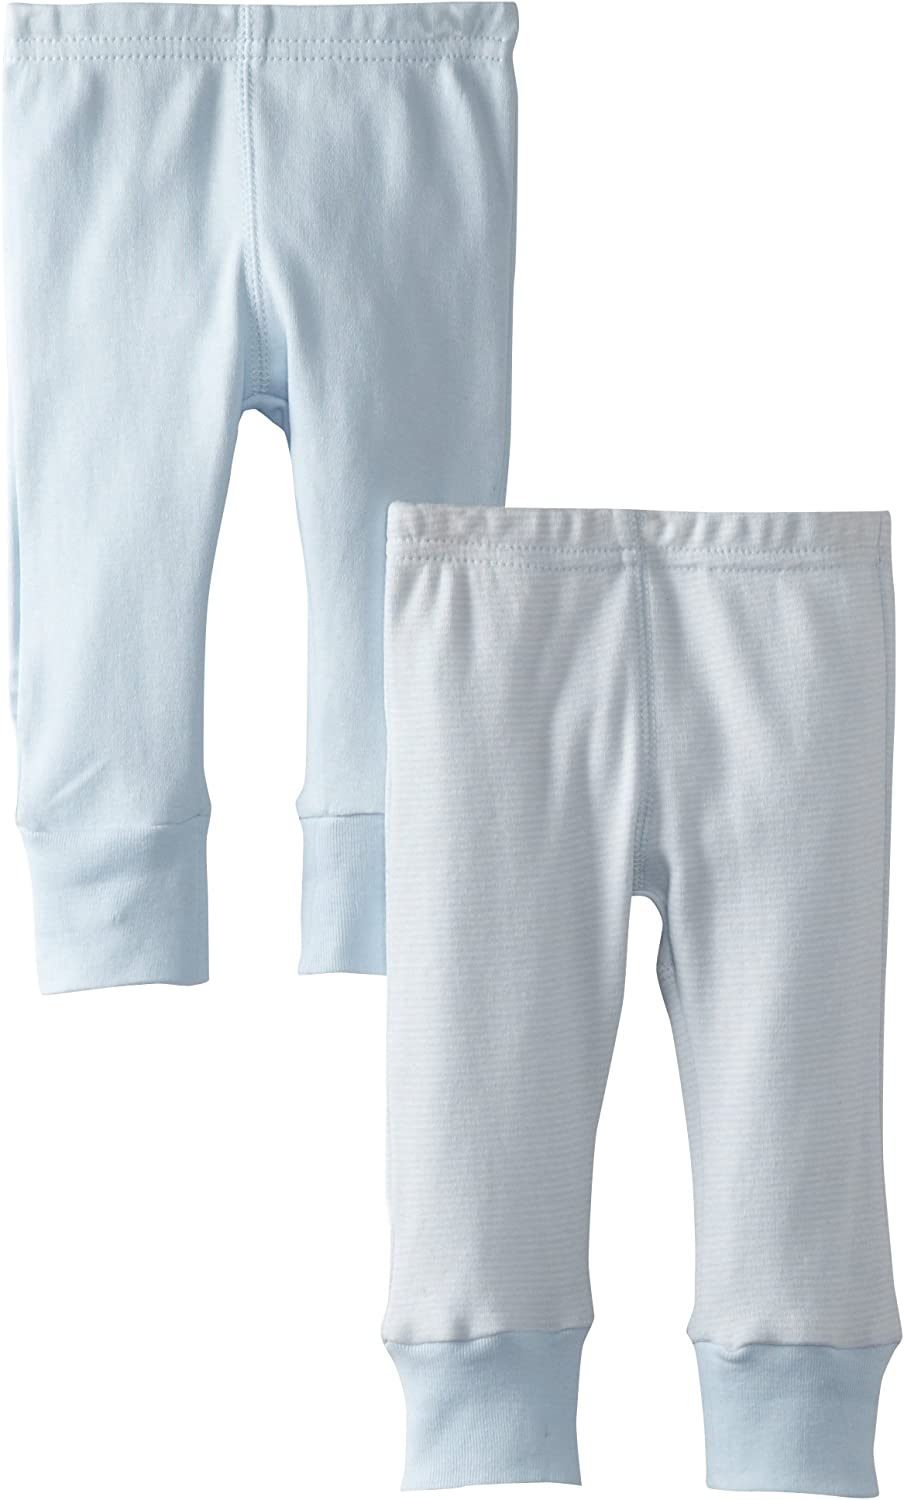 Kushies Baby Everyday Layette 2 Pack Pants Set,